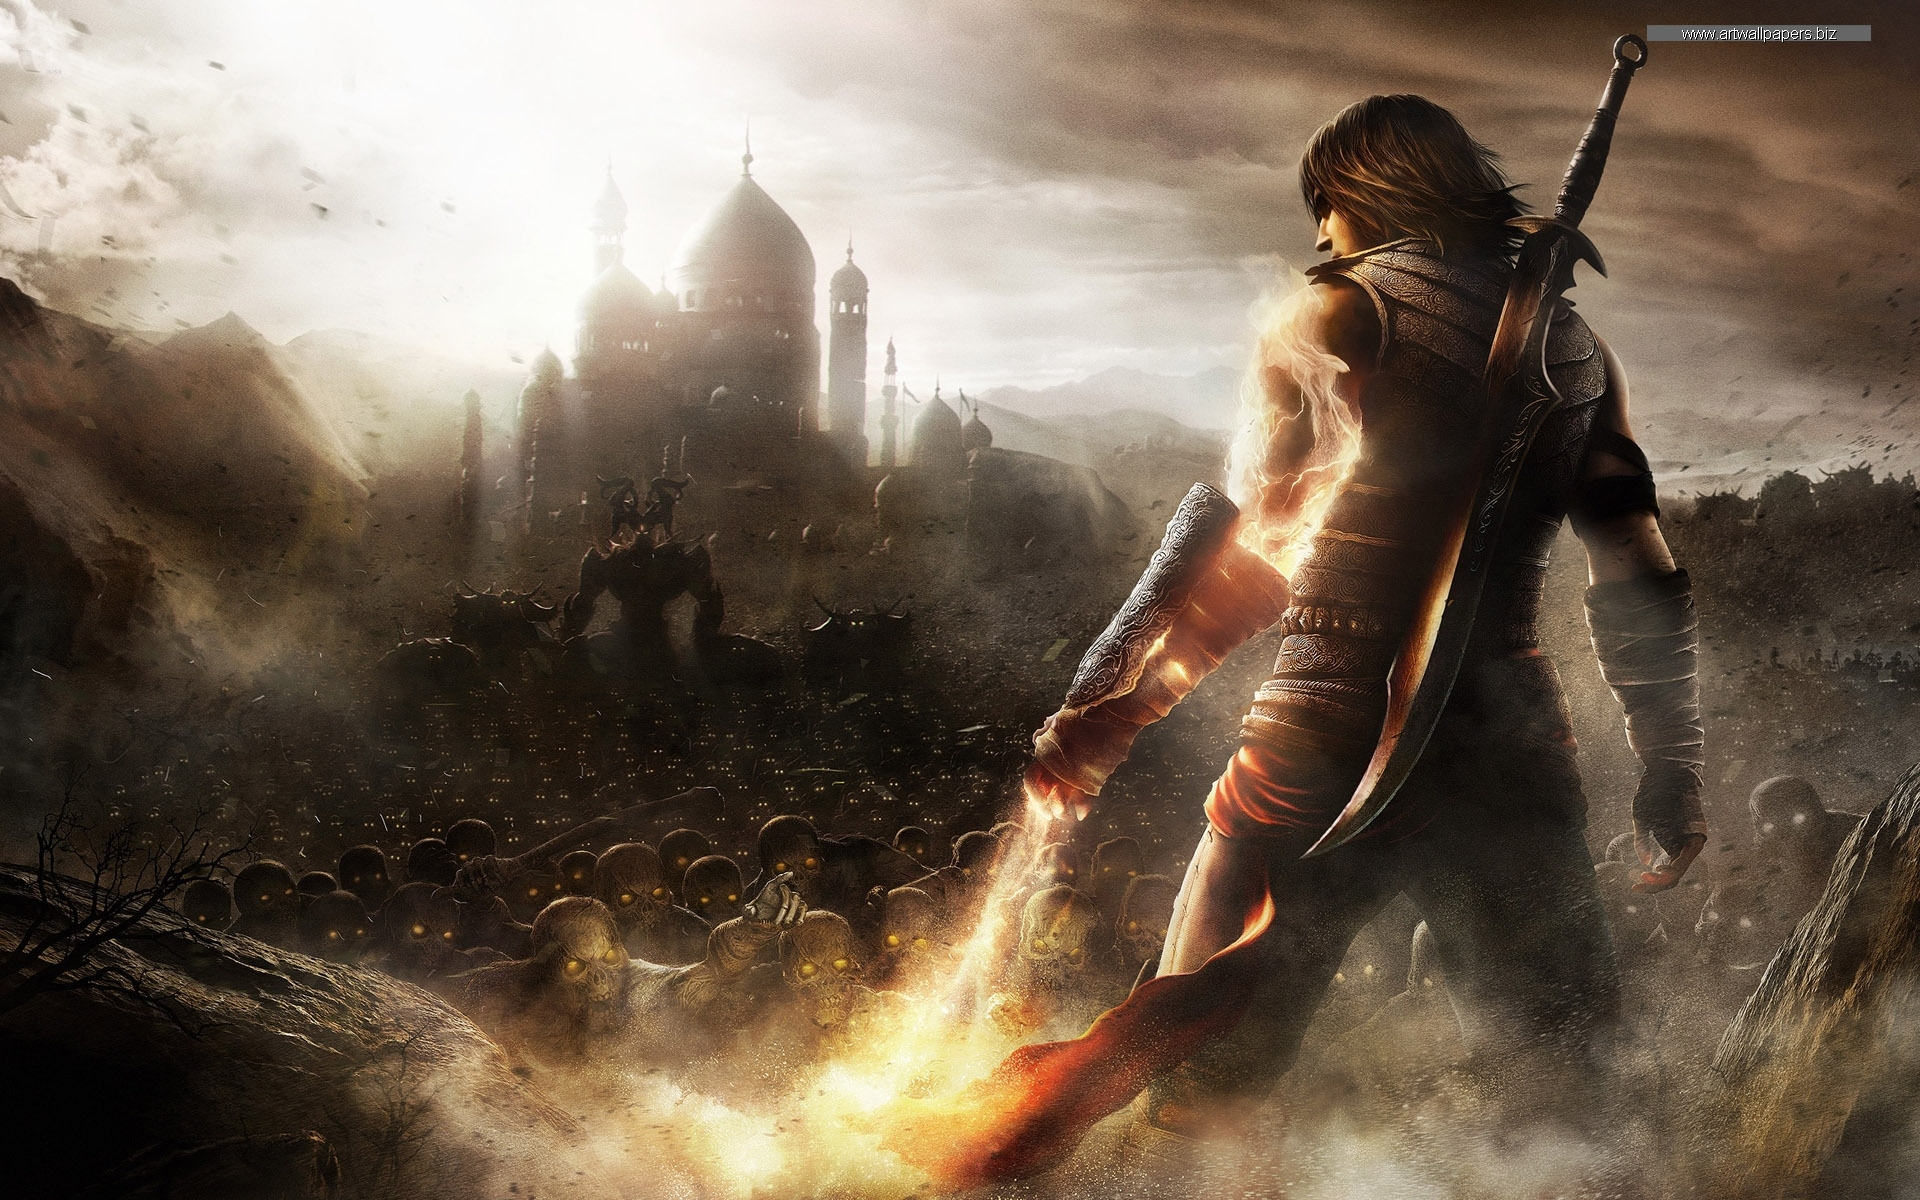 17 Best images about gaming backgrounds on Pinterest | Search